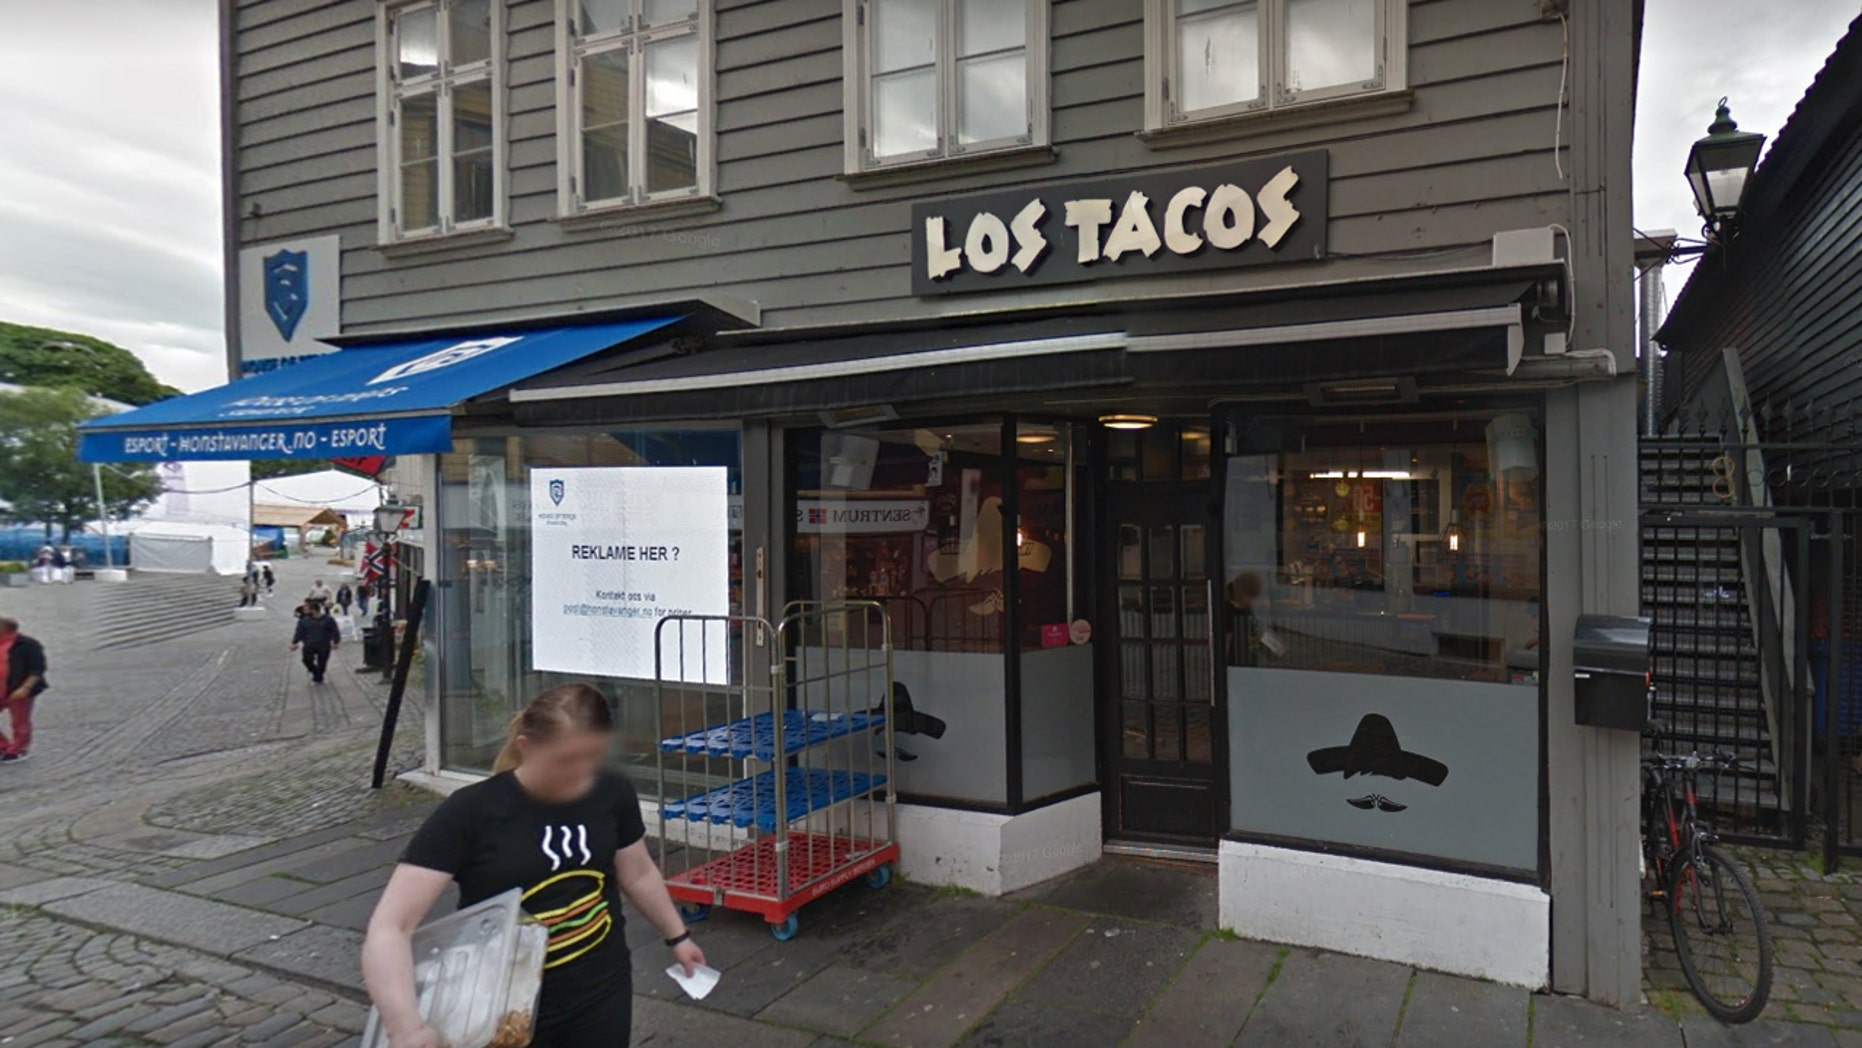 A new location of Los Tacos in Norway is trolling Trump with its window sign.